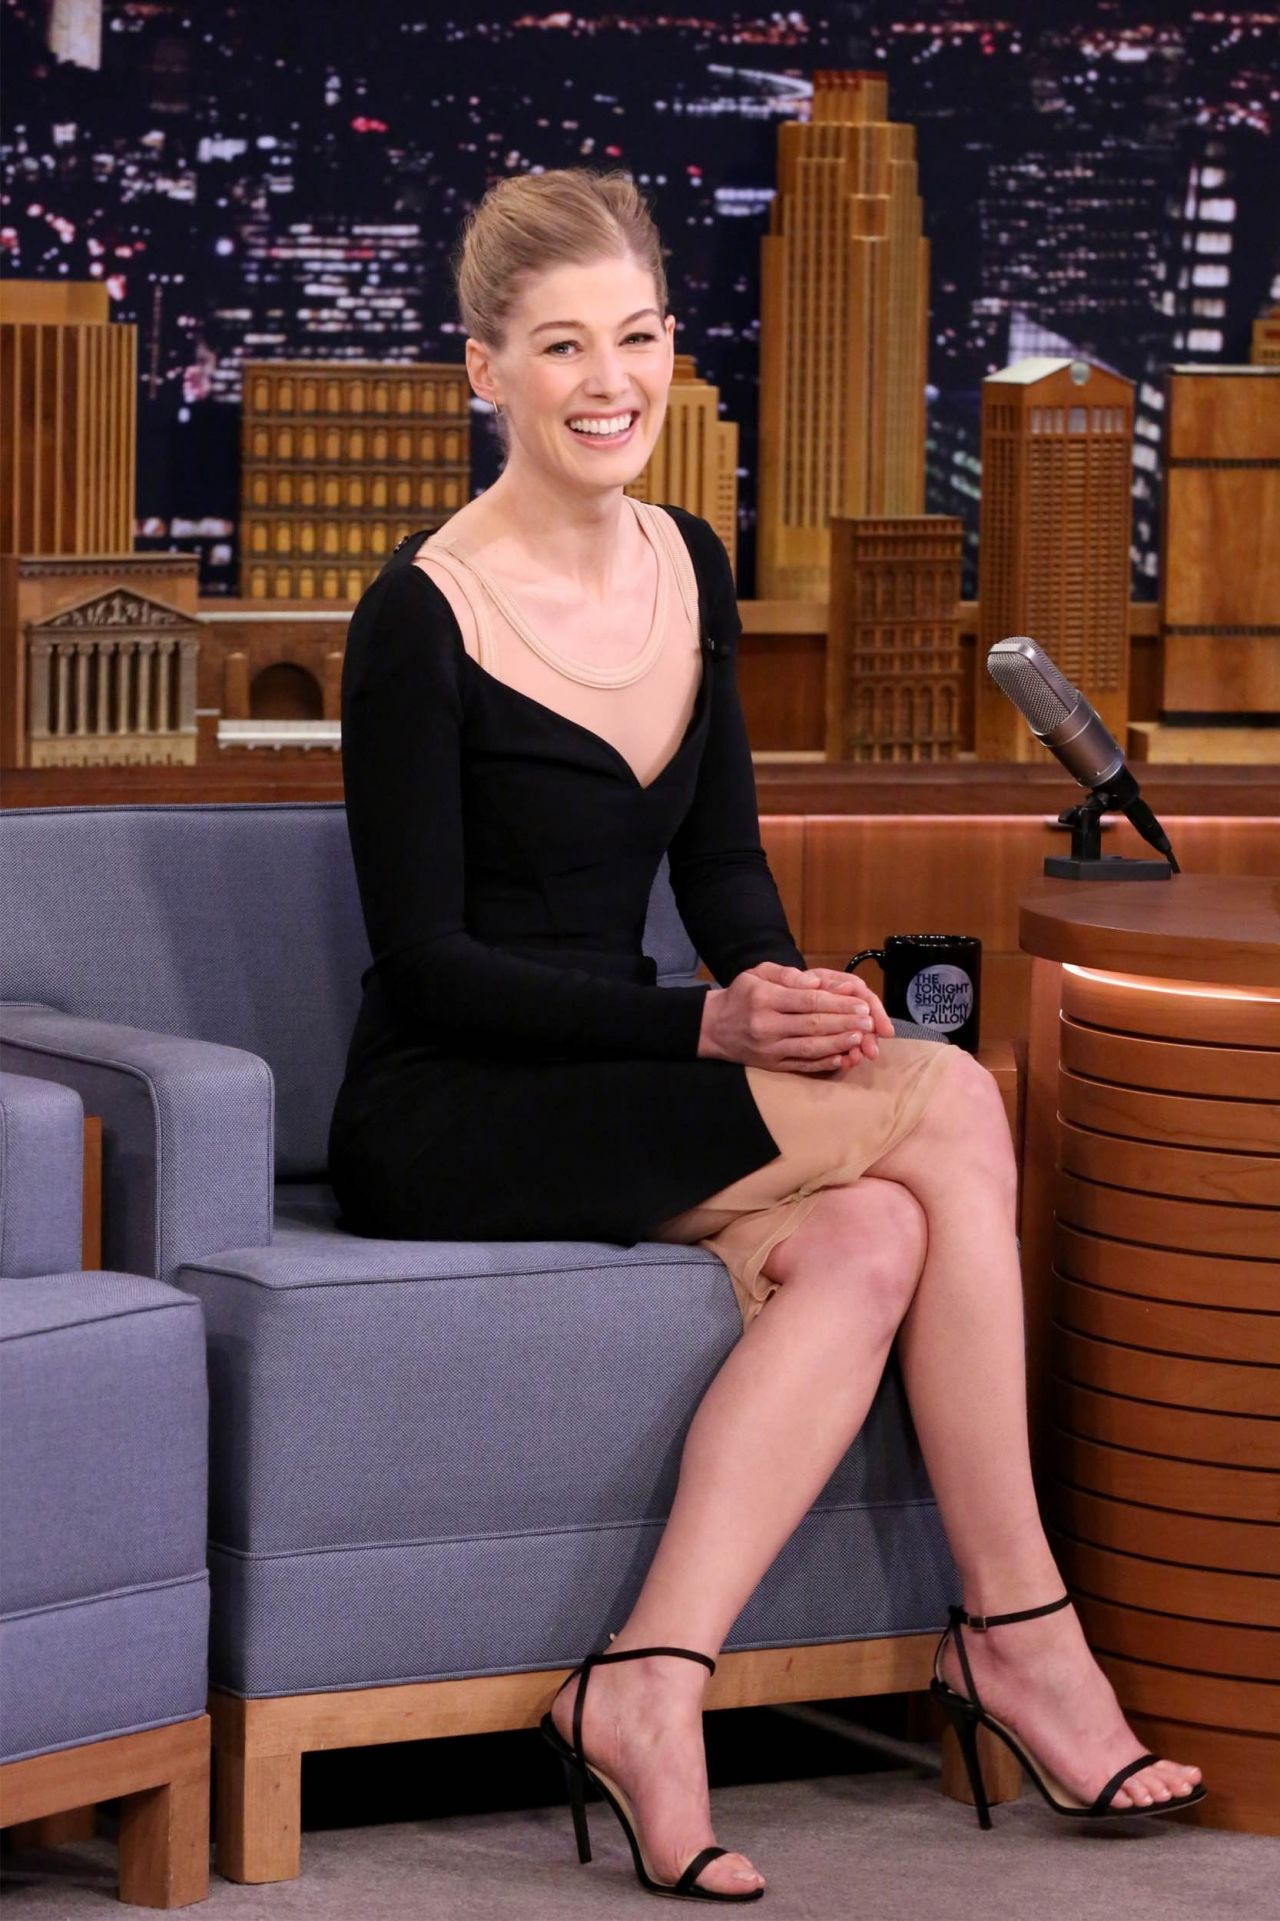 sofa expo new york 2017 old collection leeds rosamund pike the tonight show starring jimmy fallon in